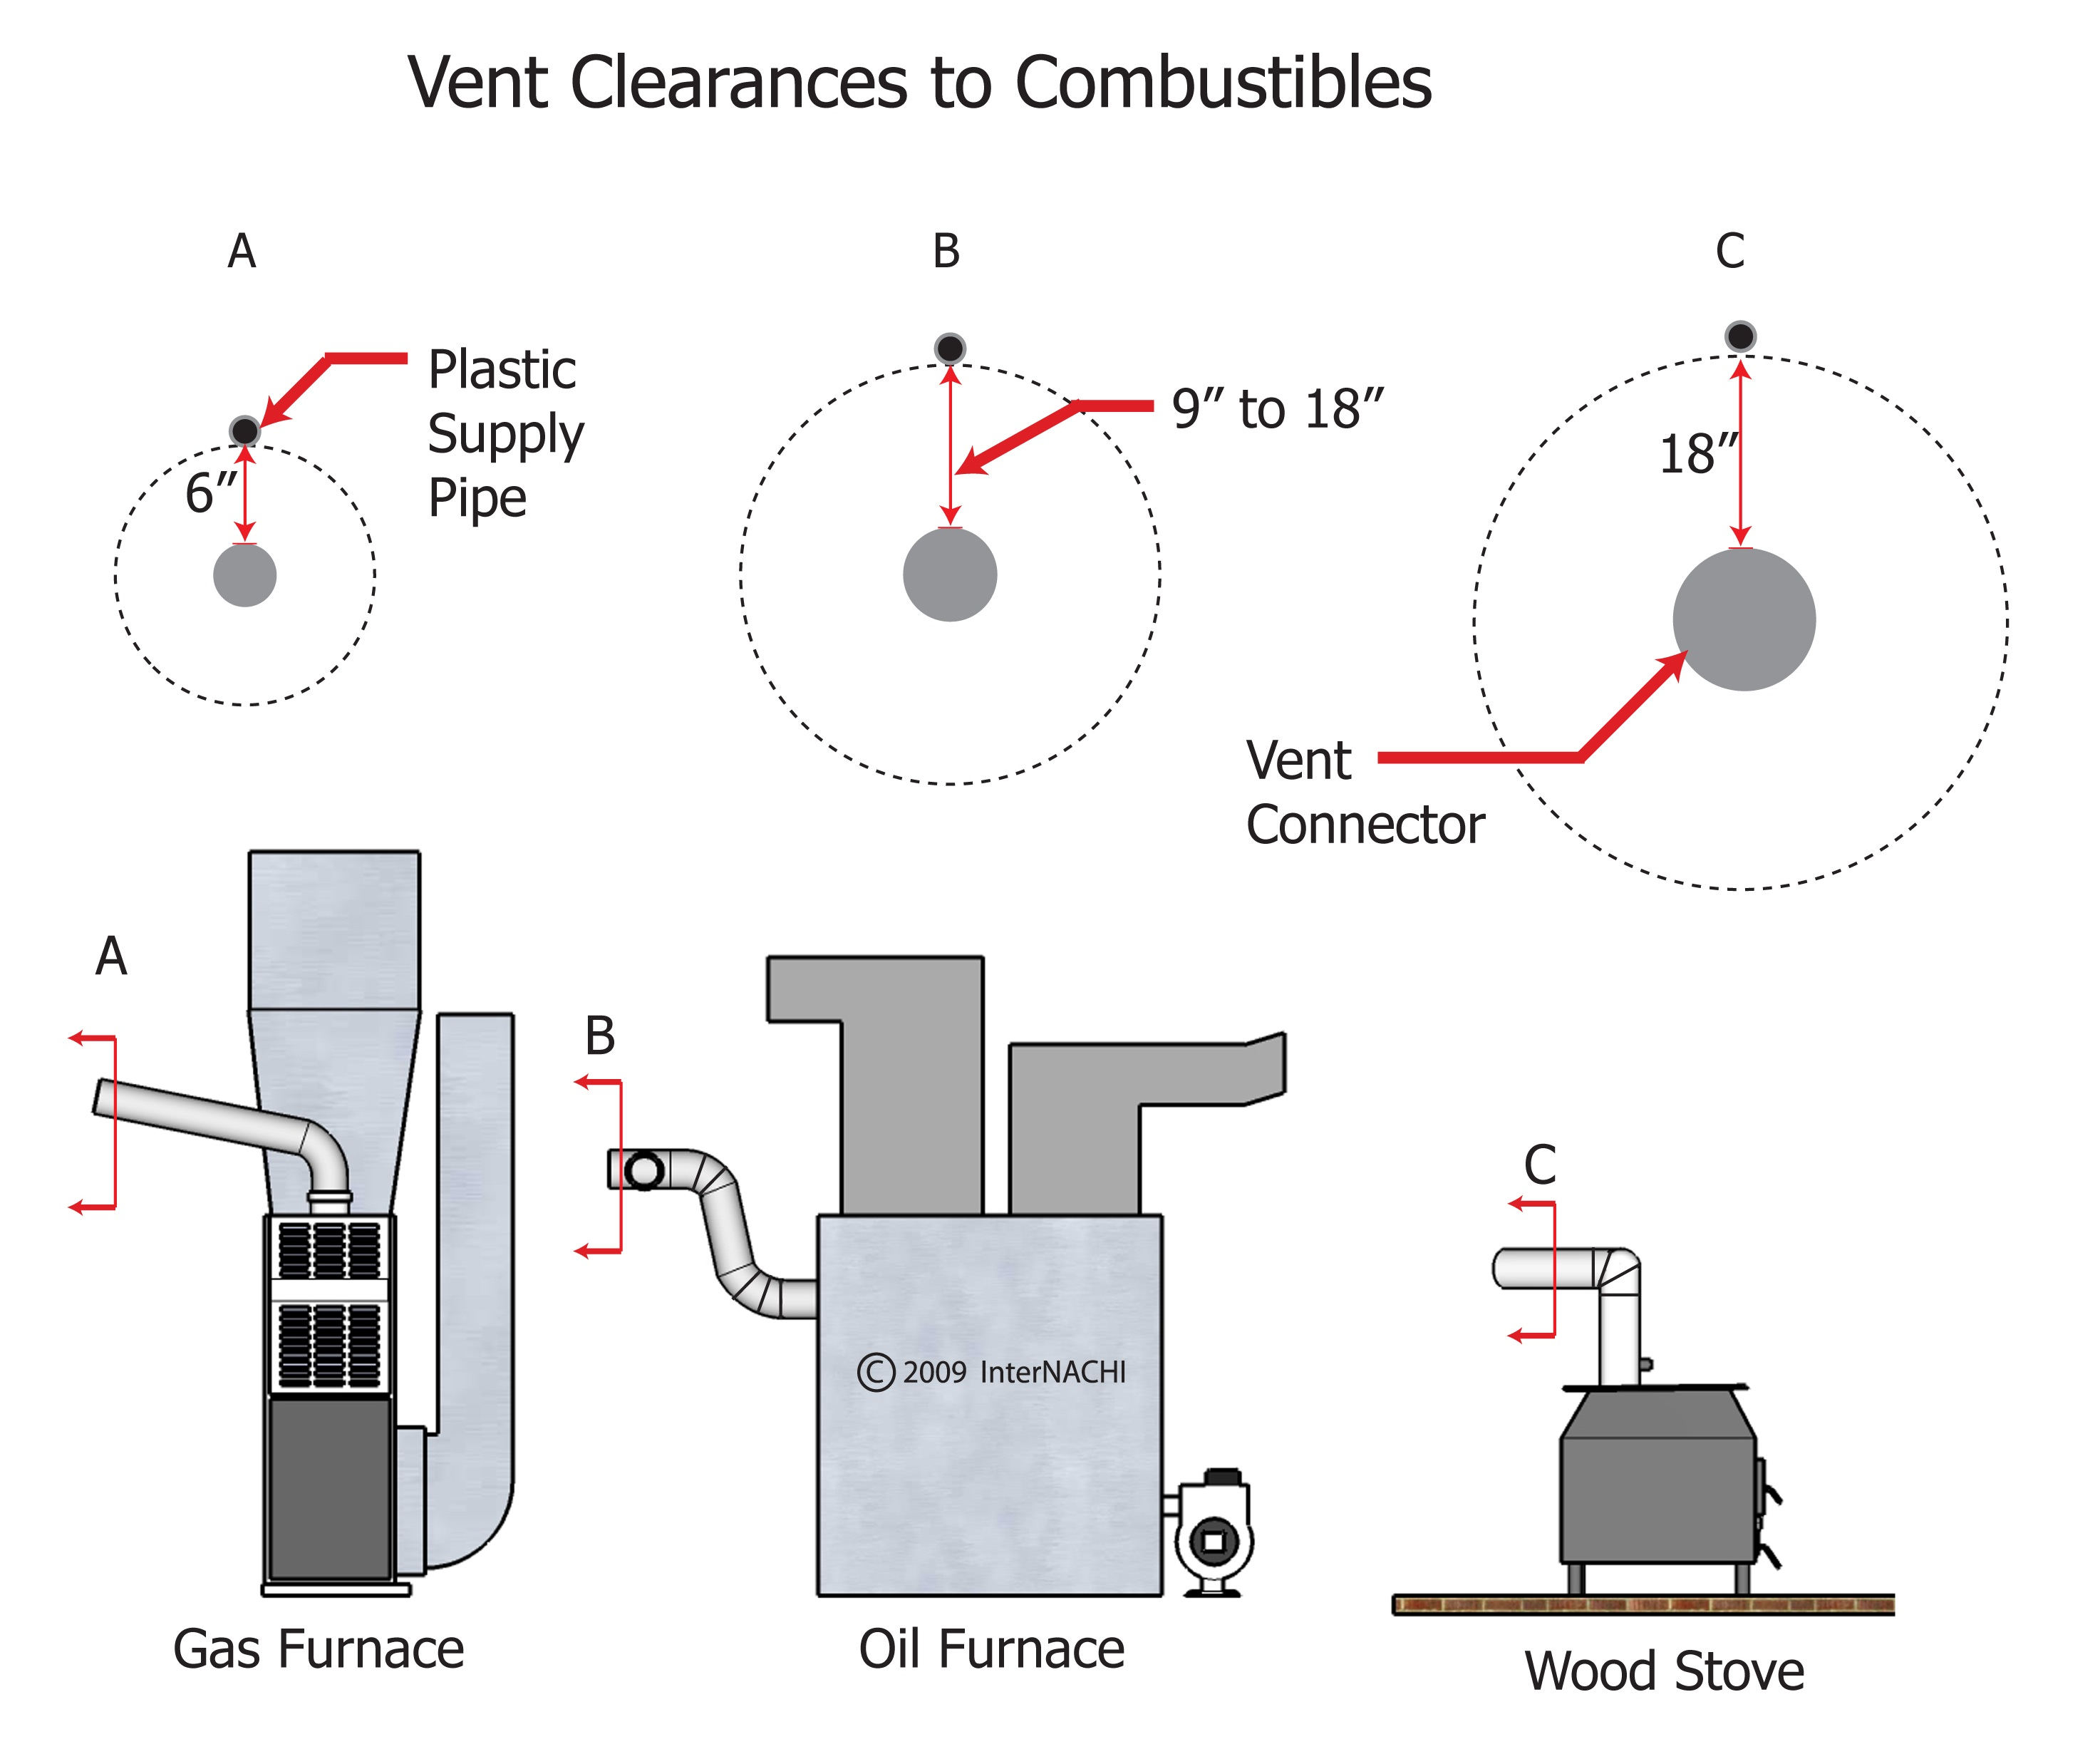 Vent clearances to combustibles.